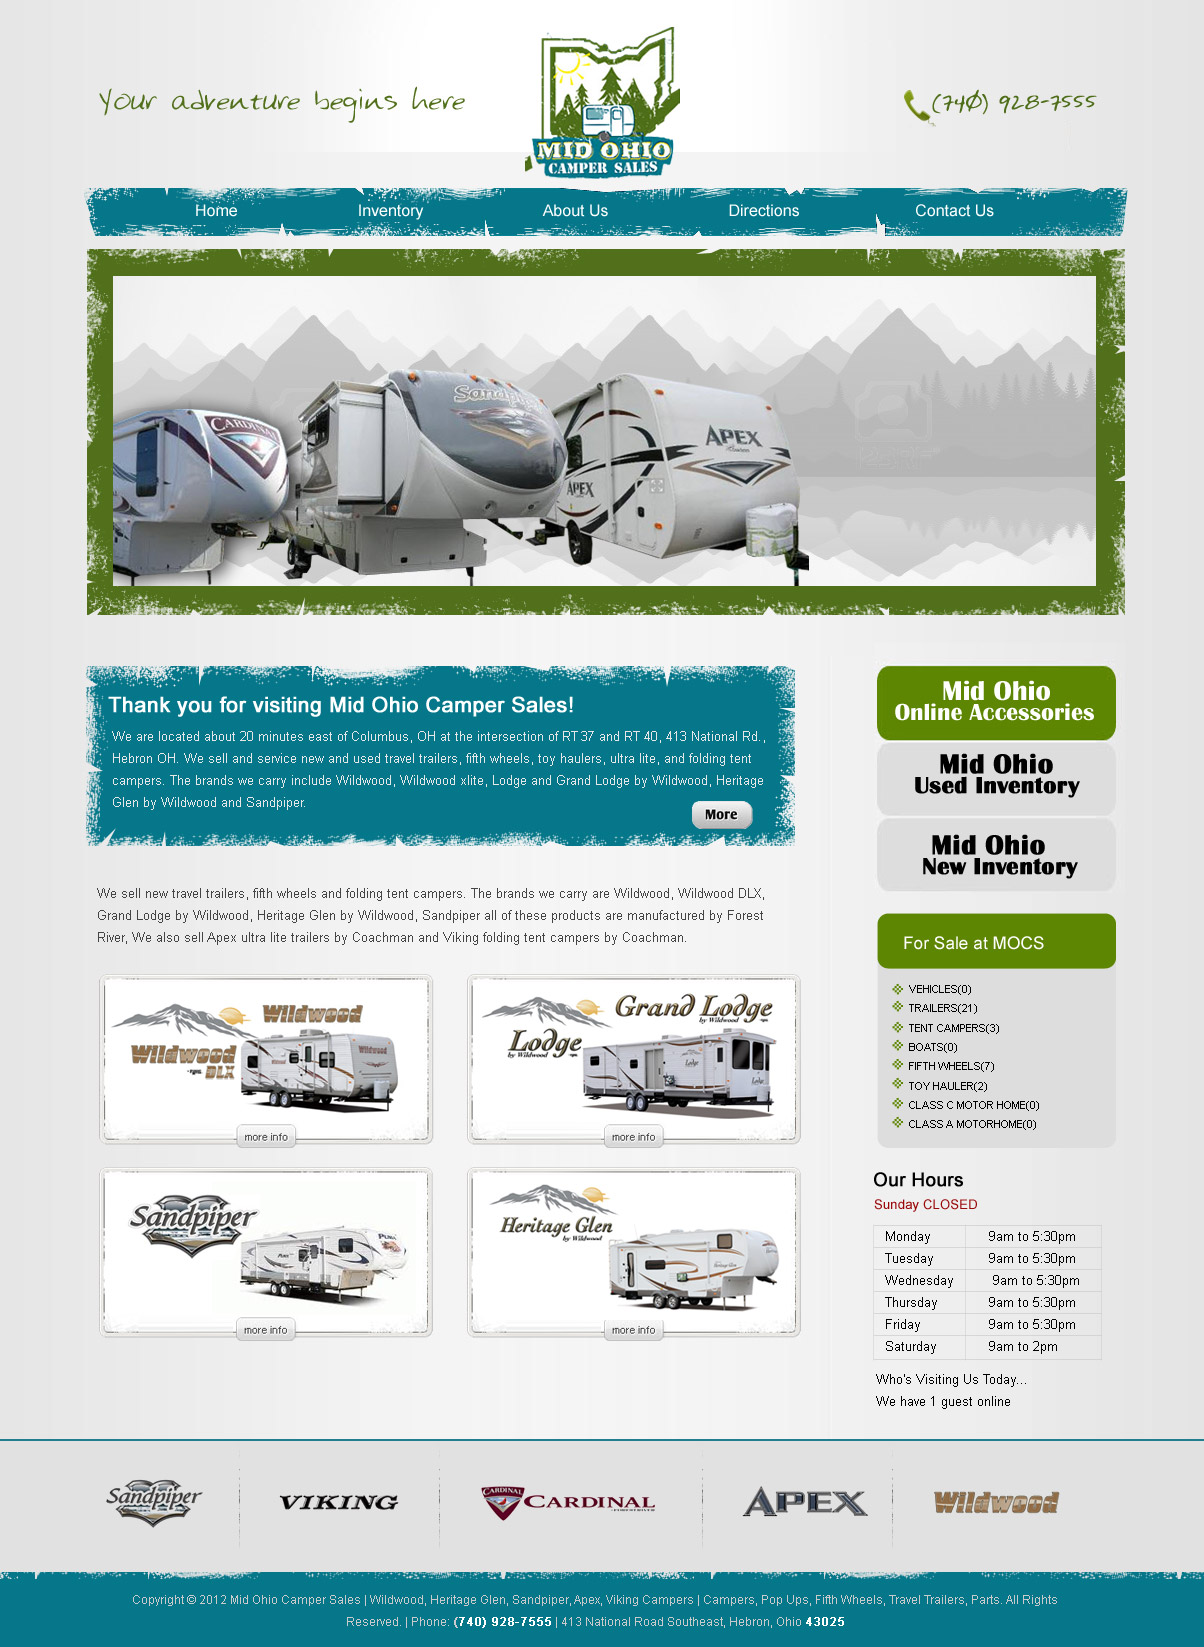 rv-dealer-website-6